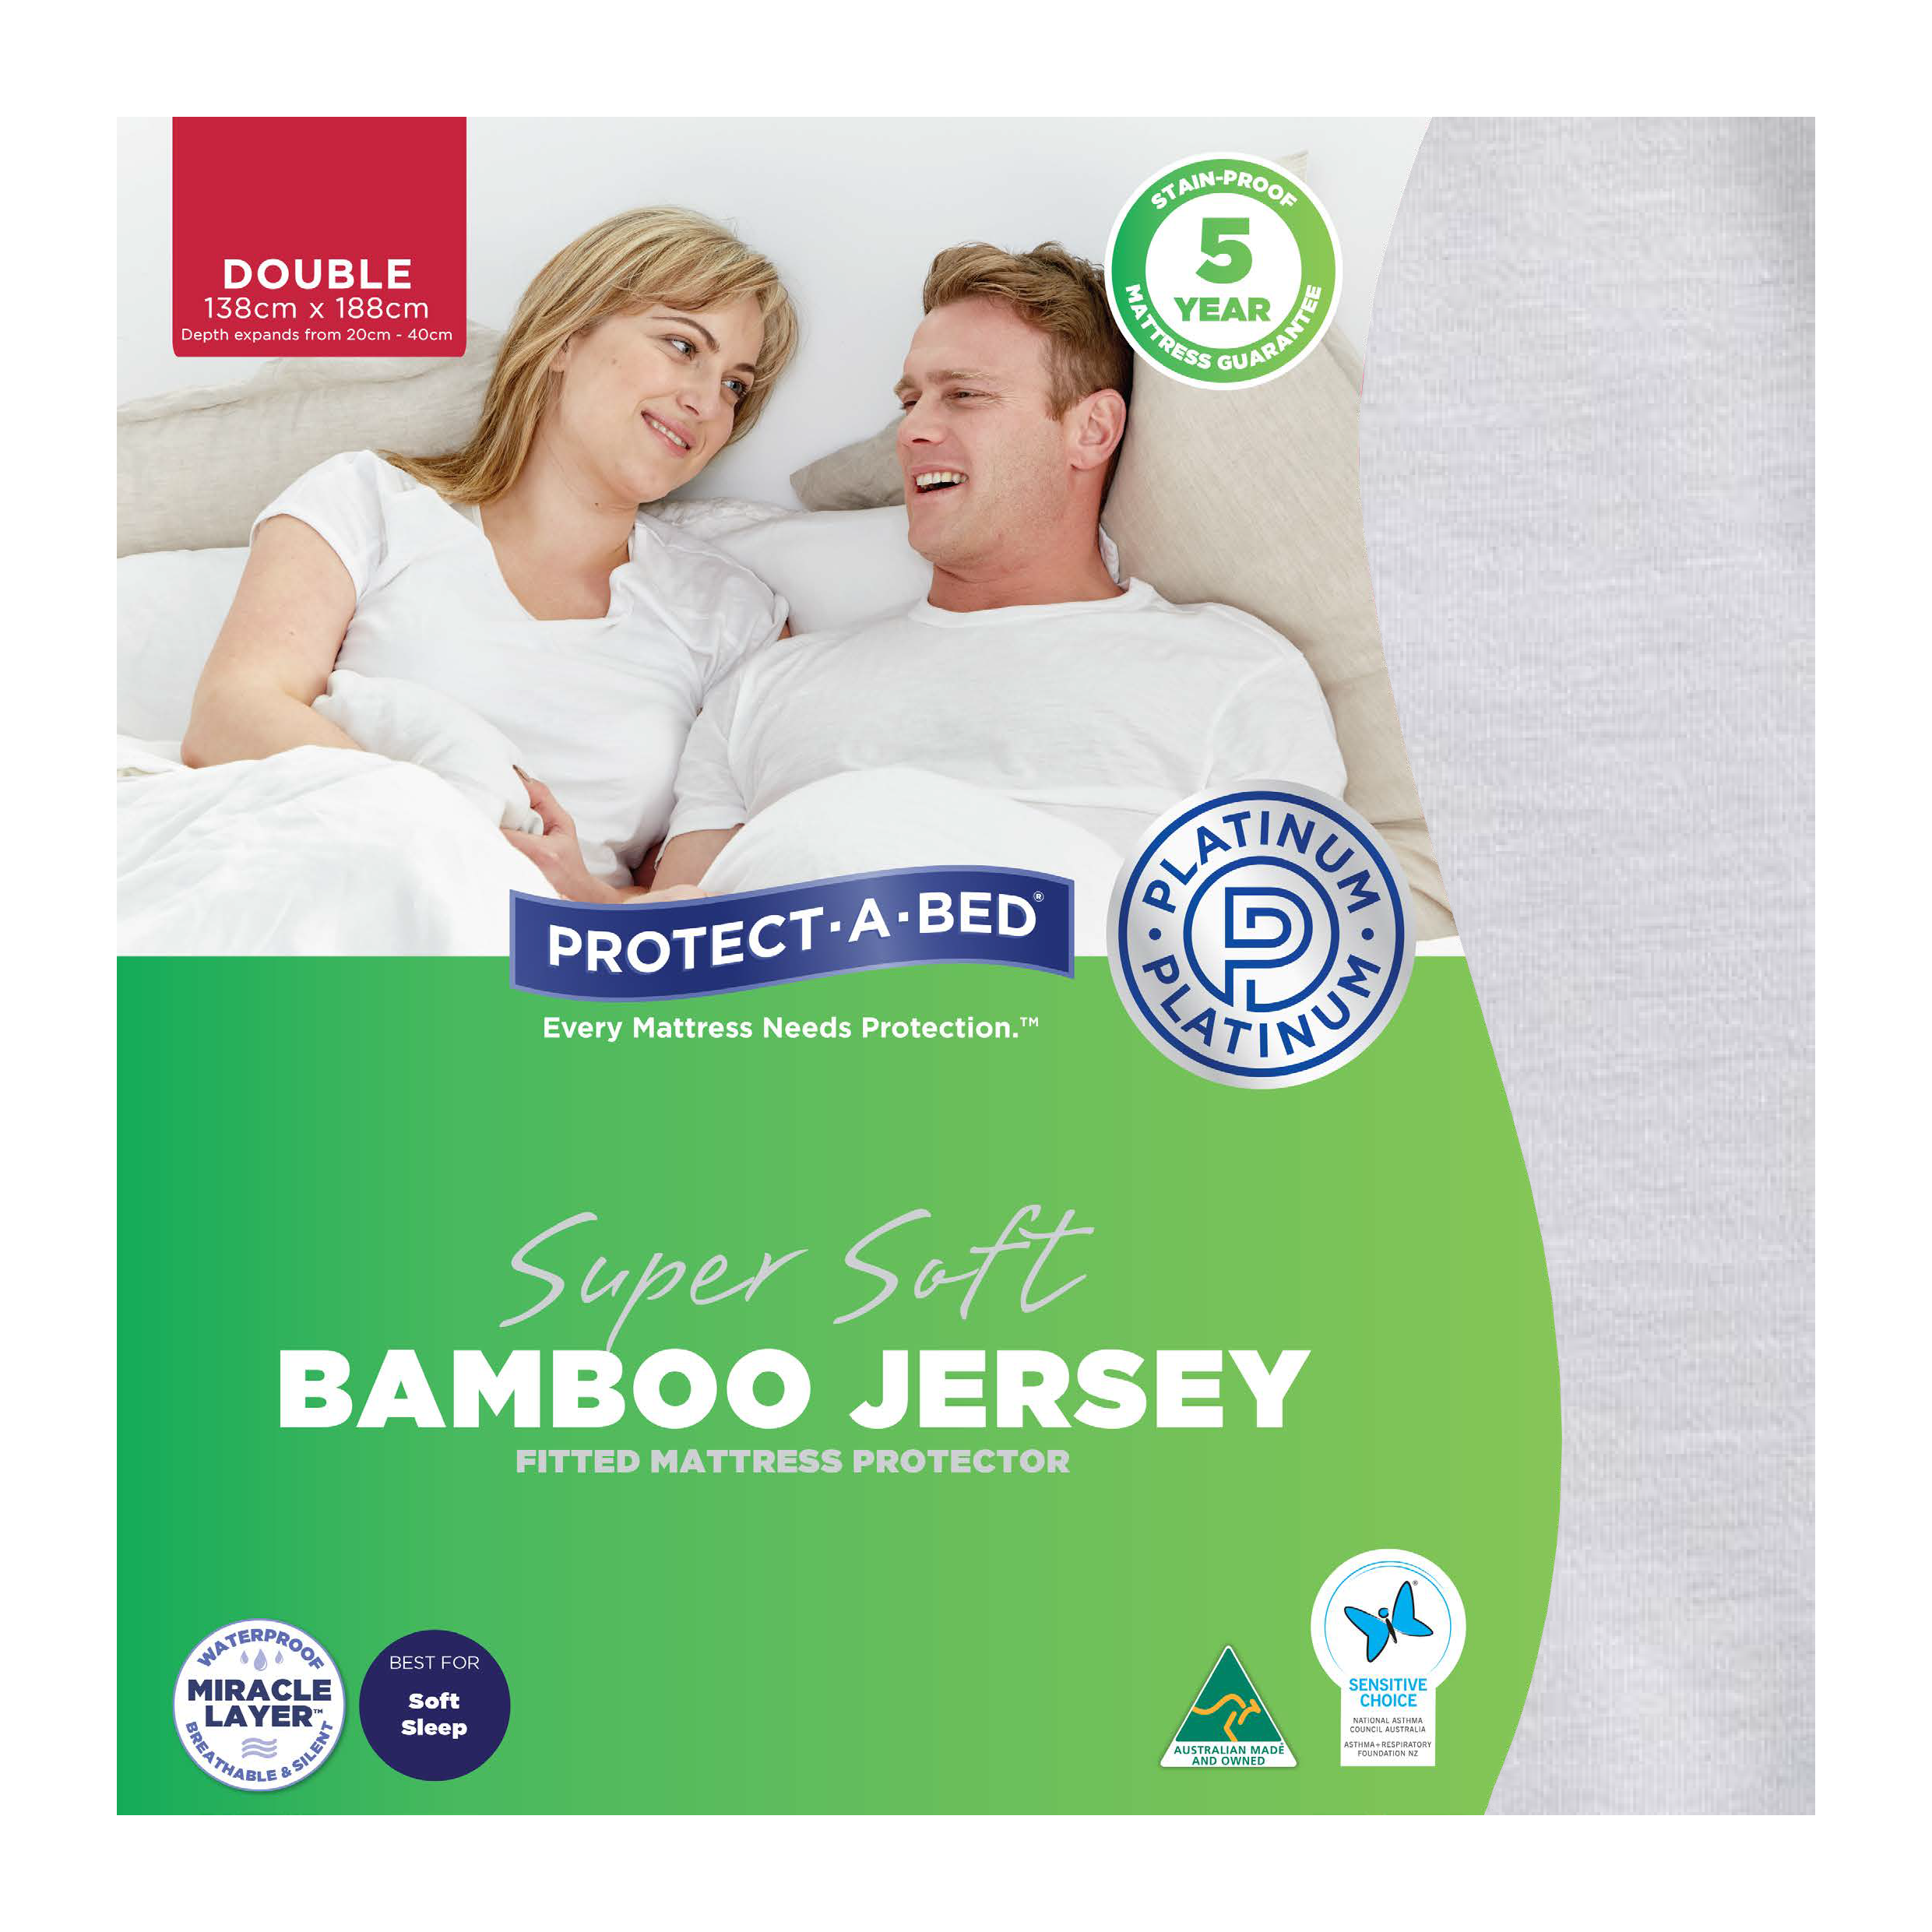 Protect-A-Bed Bamboo Jersey – Double Mattress Protector